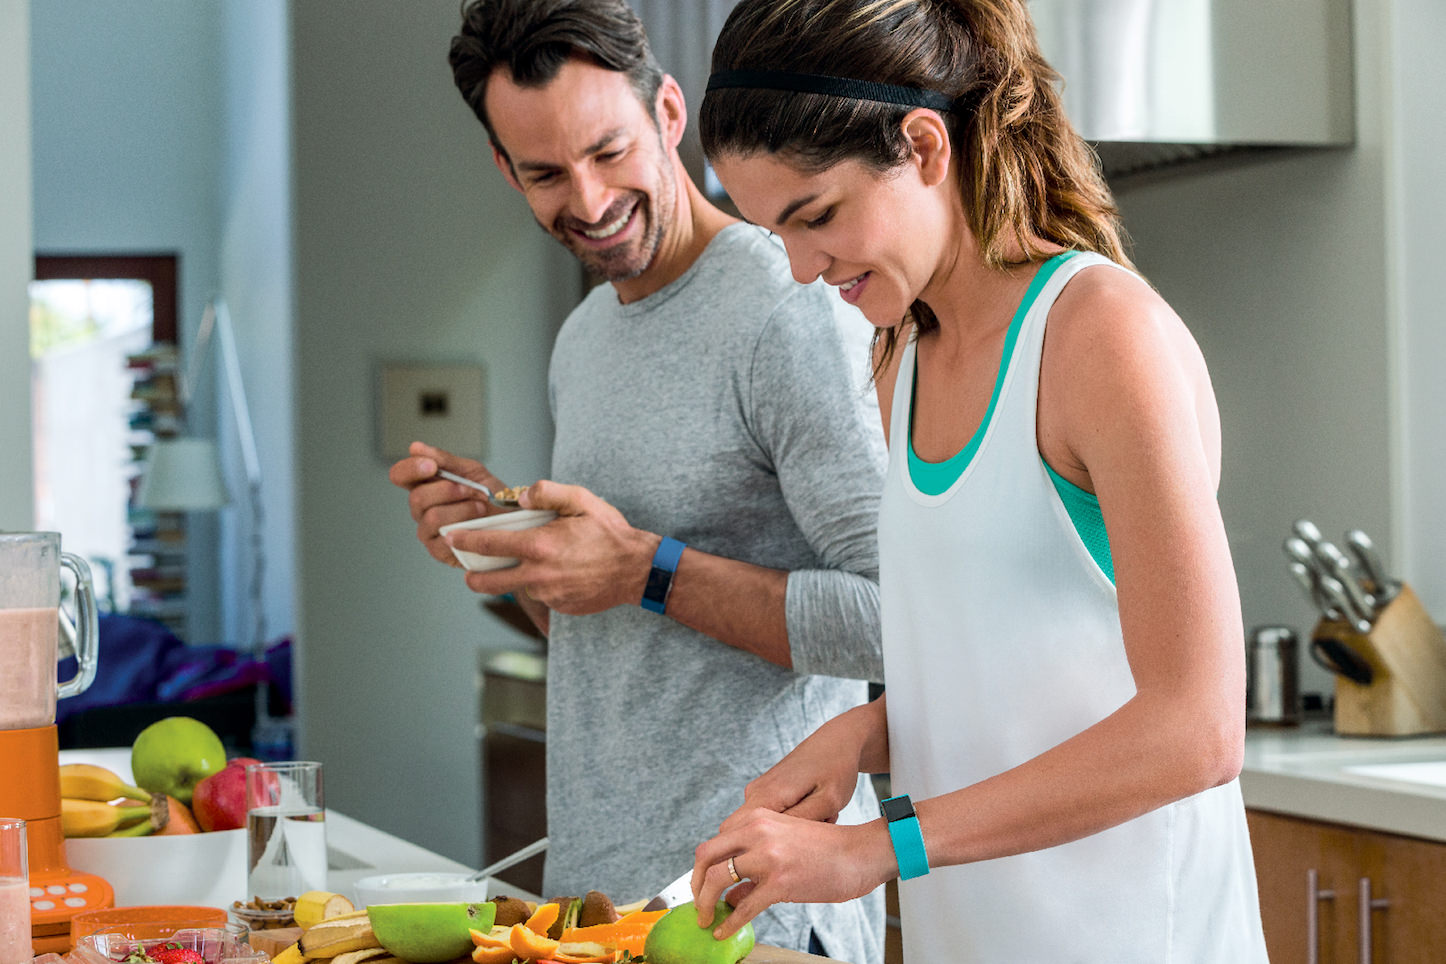 Fitbit Charge 2 Couple Kitchen Lifestyle